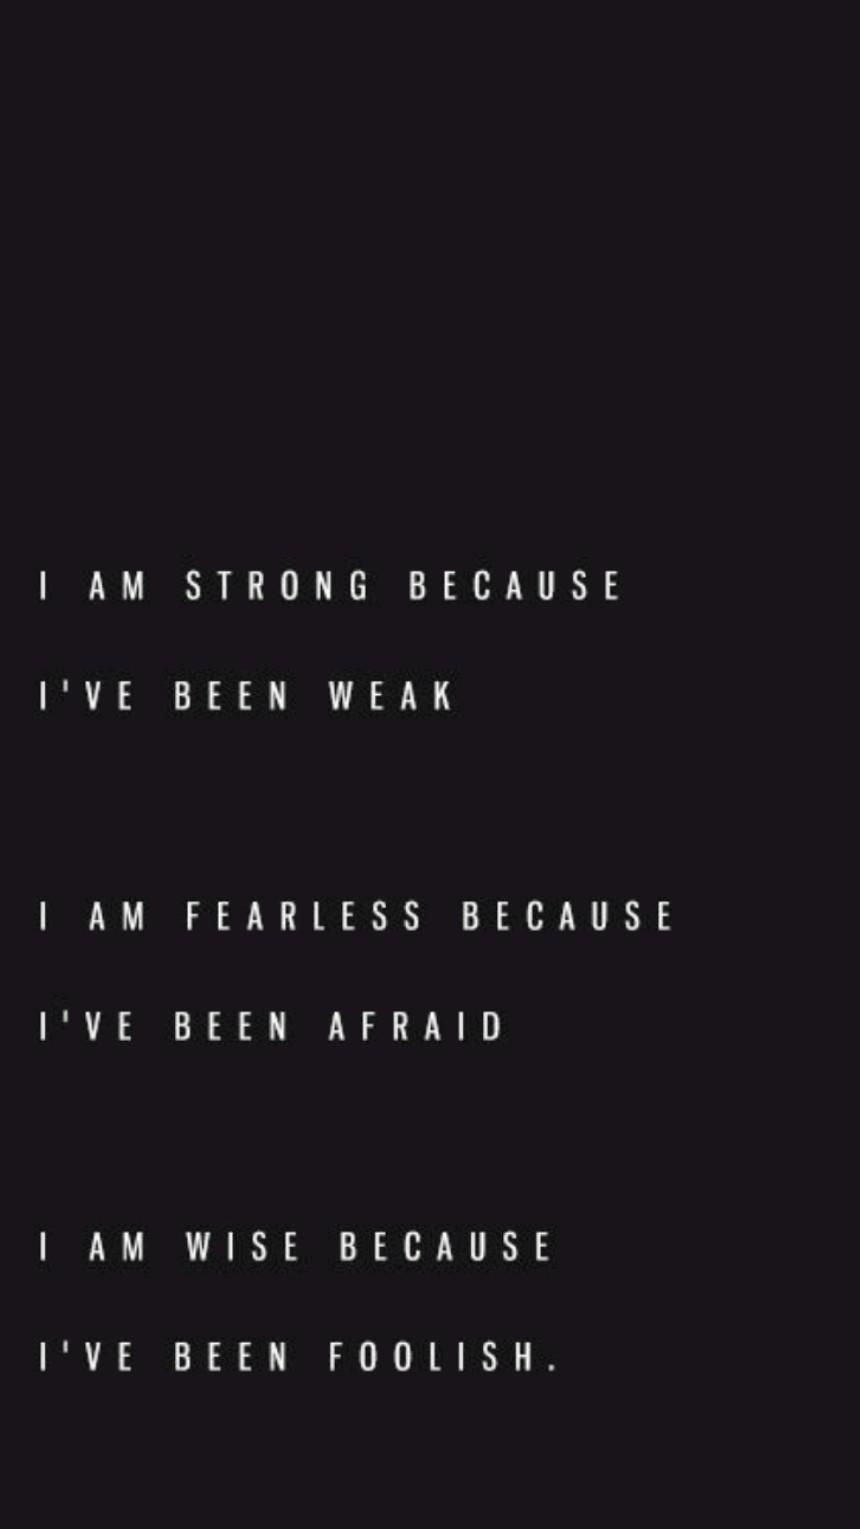 Strength💥Courage💥Fearless & Unstoppable 💥FREE RESOURCES MINI GUIDE